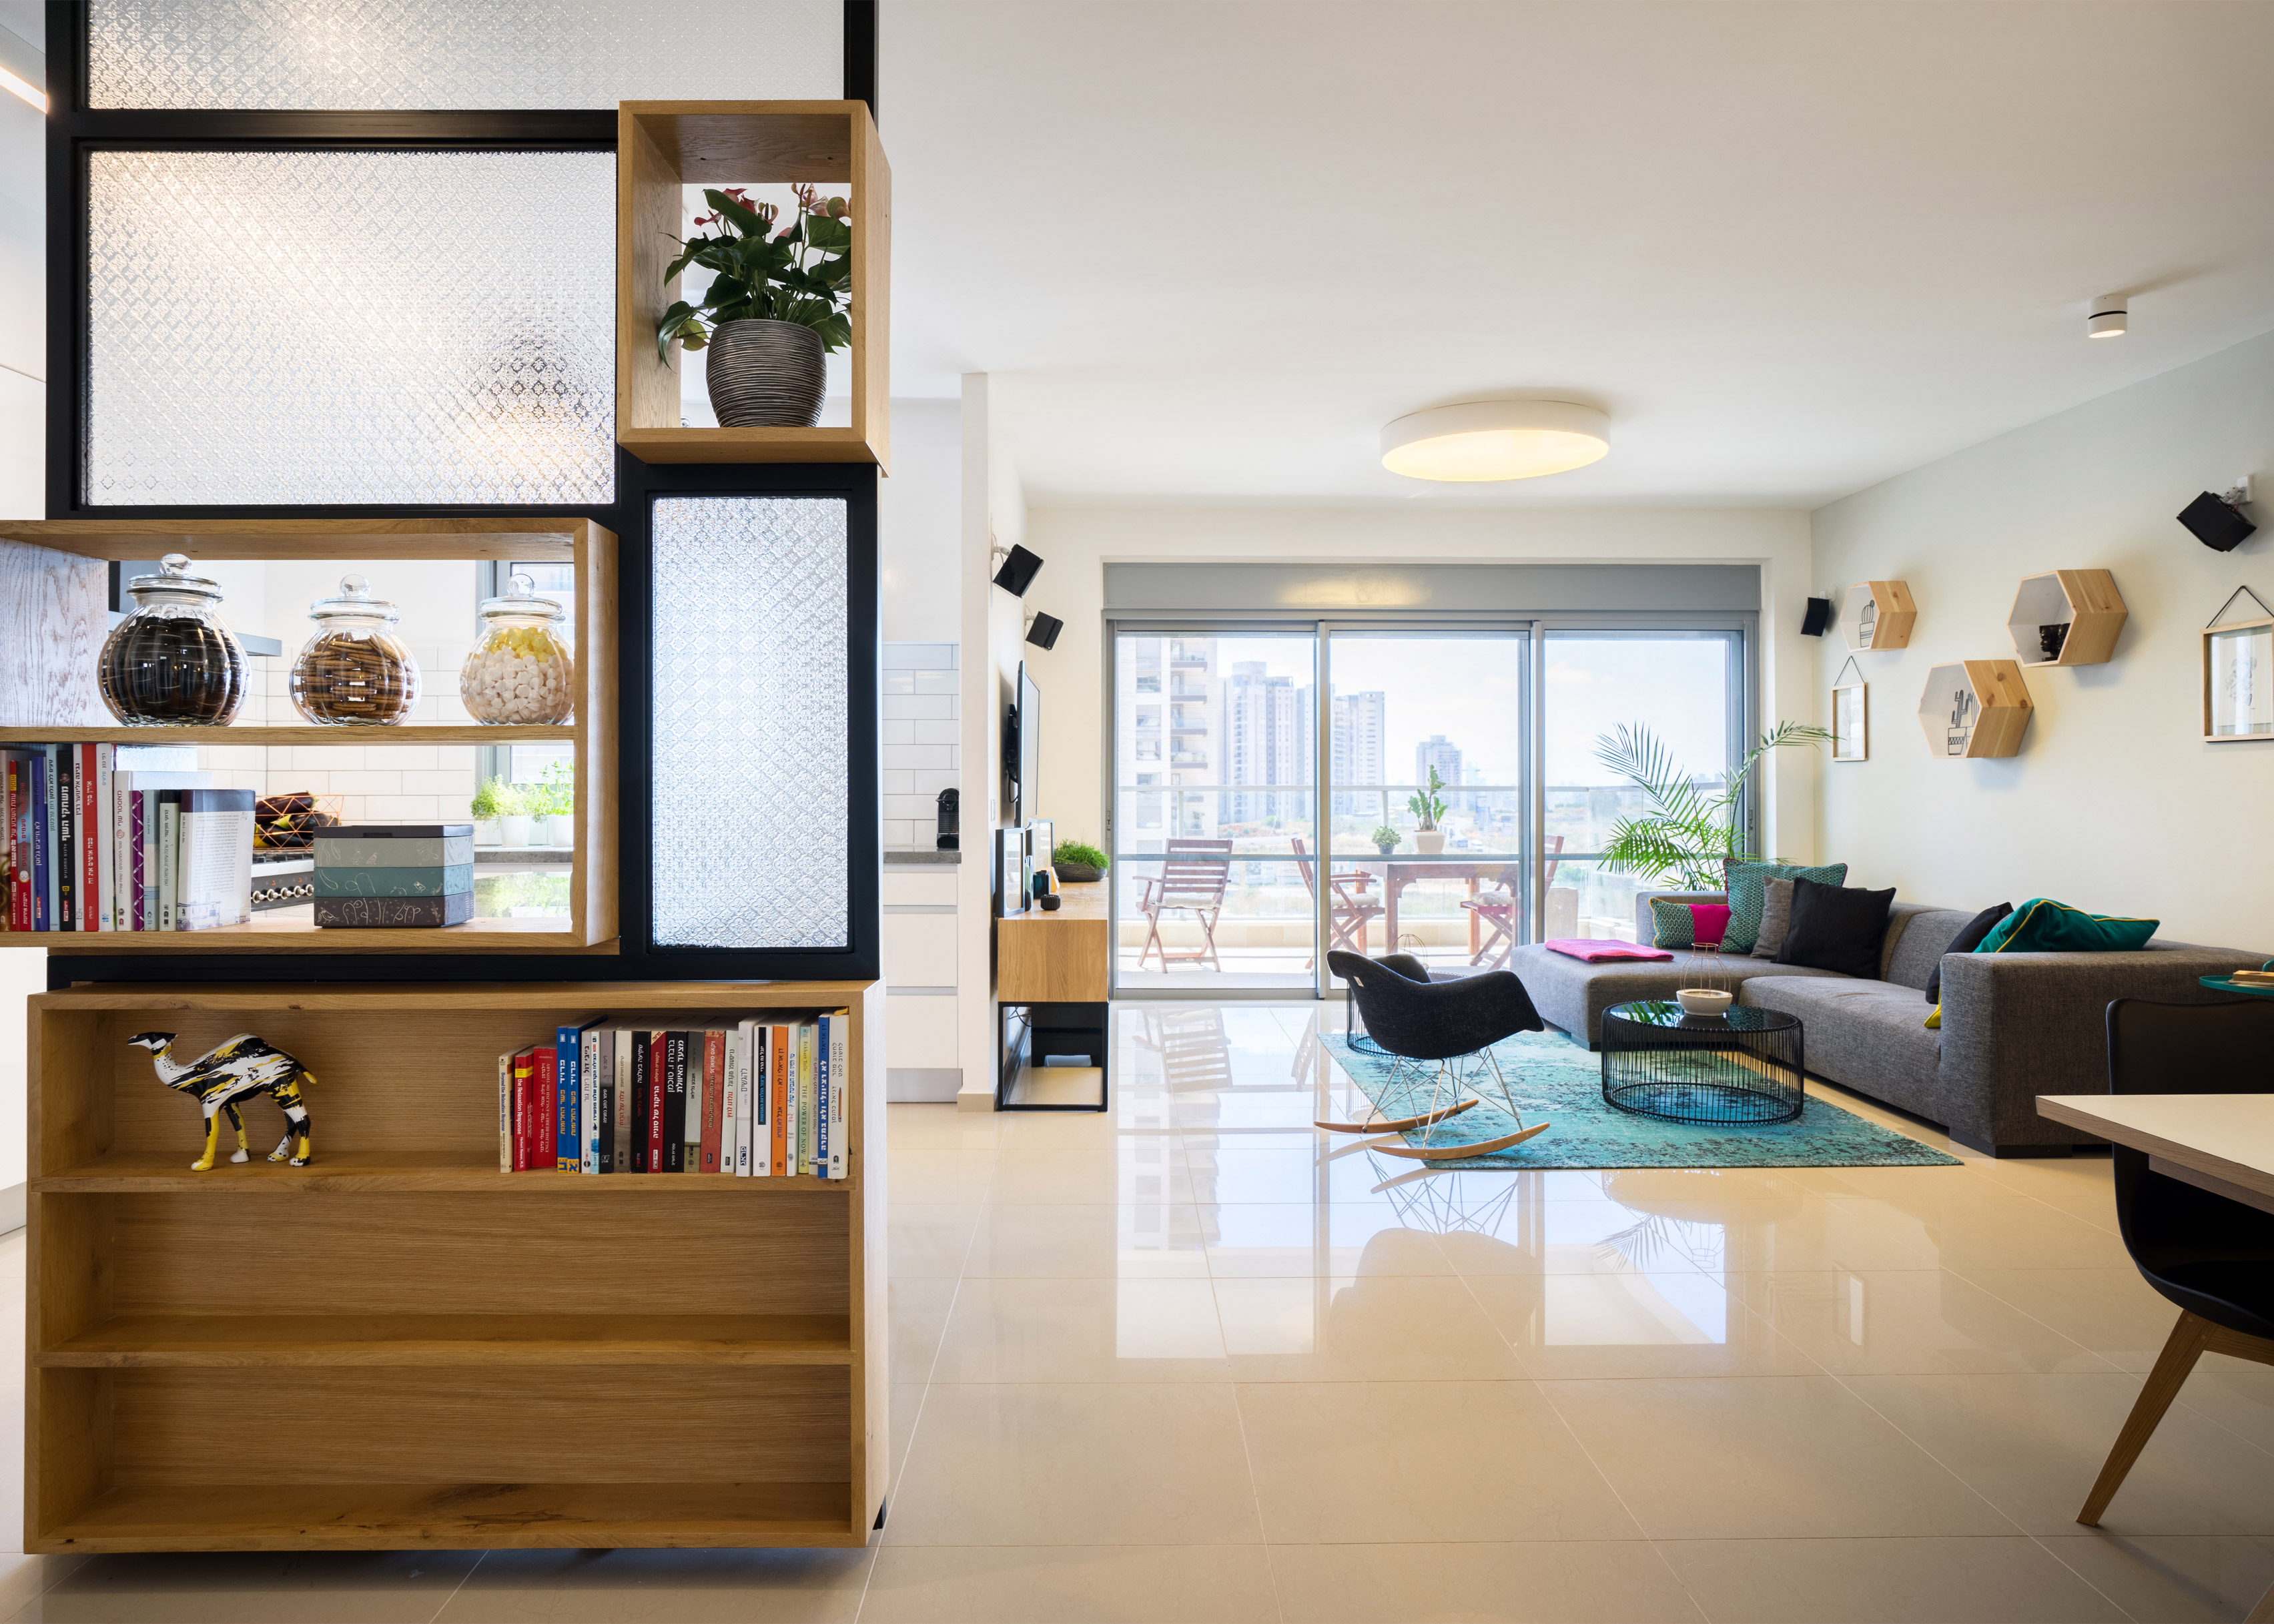 Little Drop of Black apartment by Lital Dayee